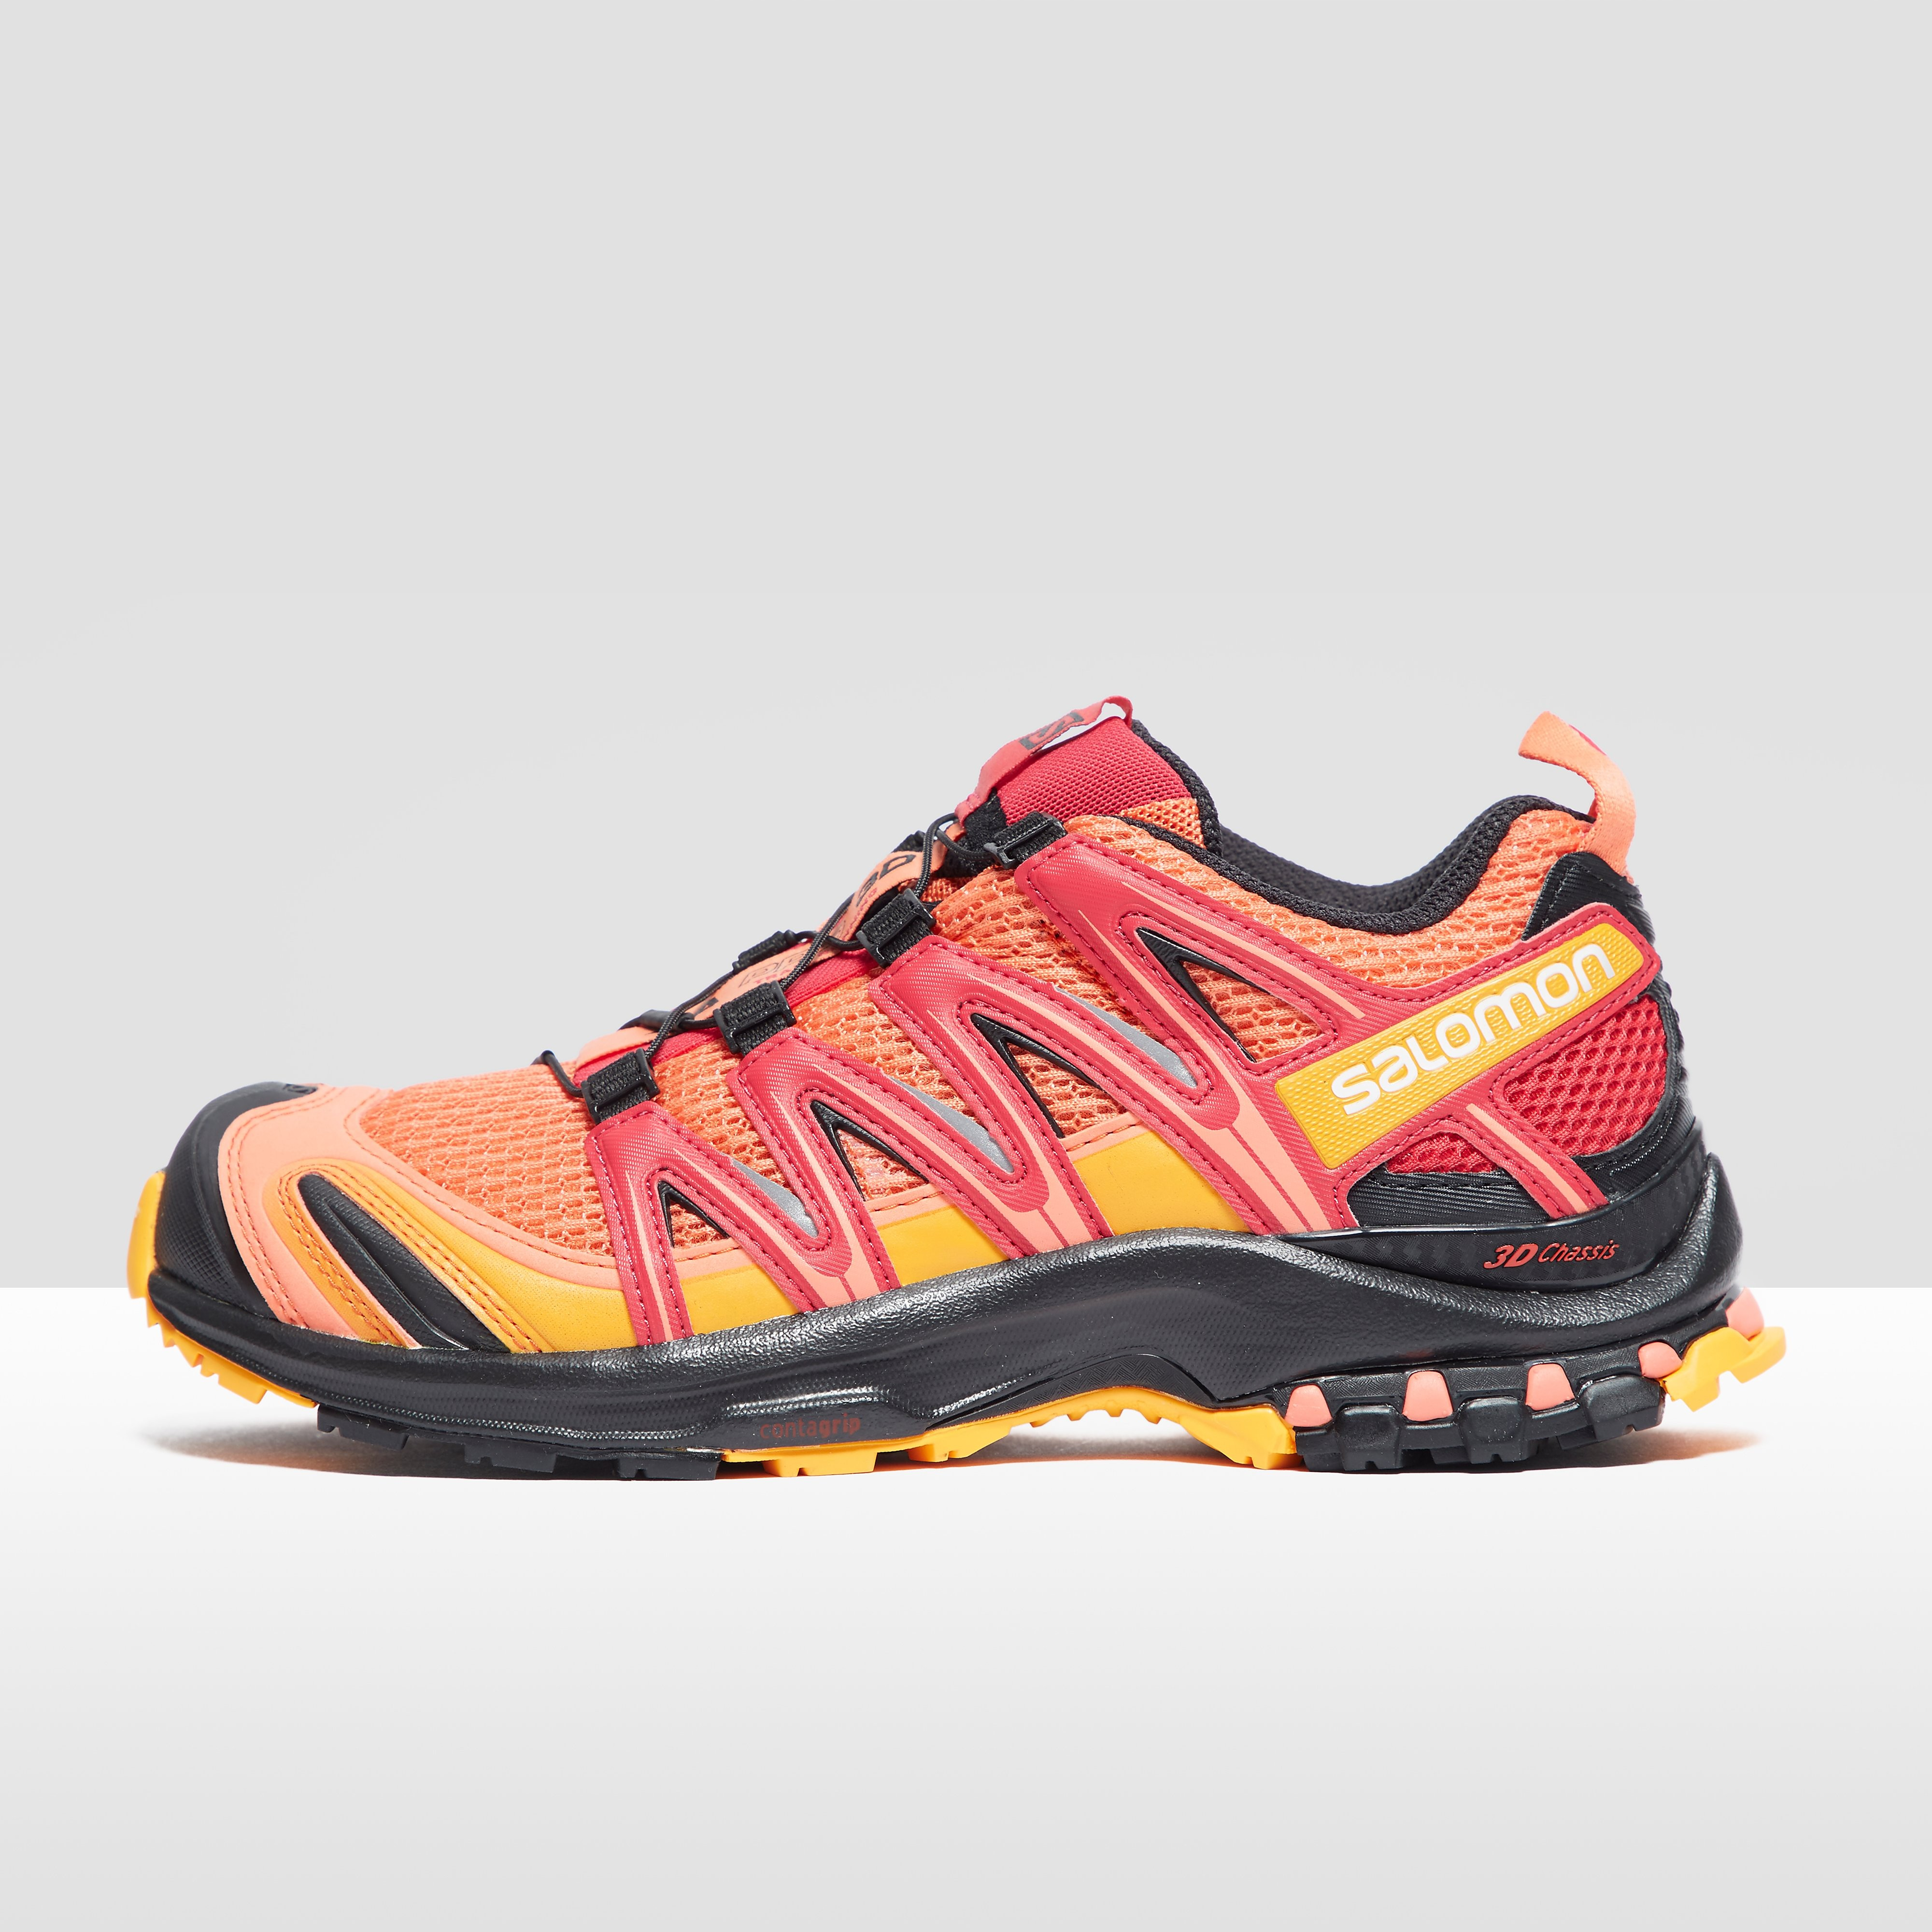 Salomon XA PRO 3D GTX Trail Women's Running Shoes